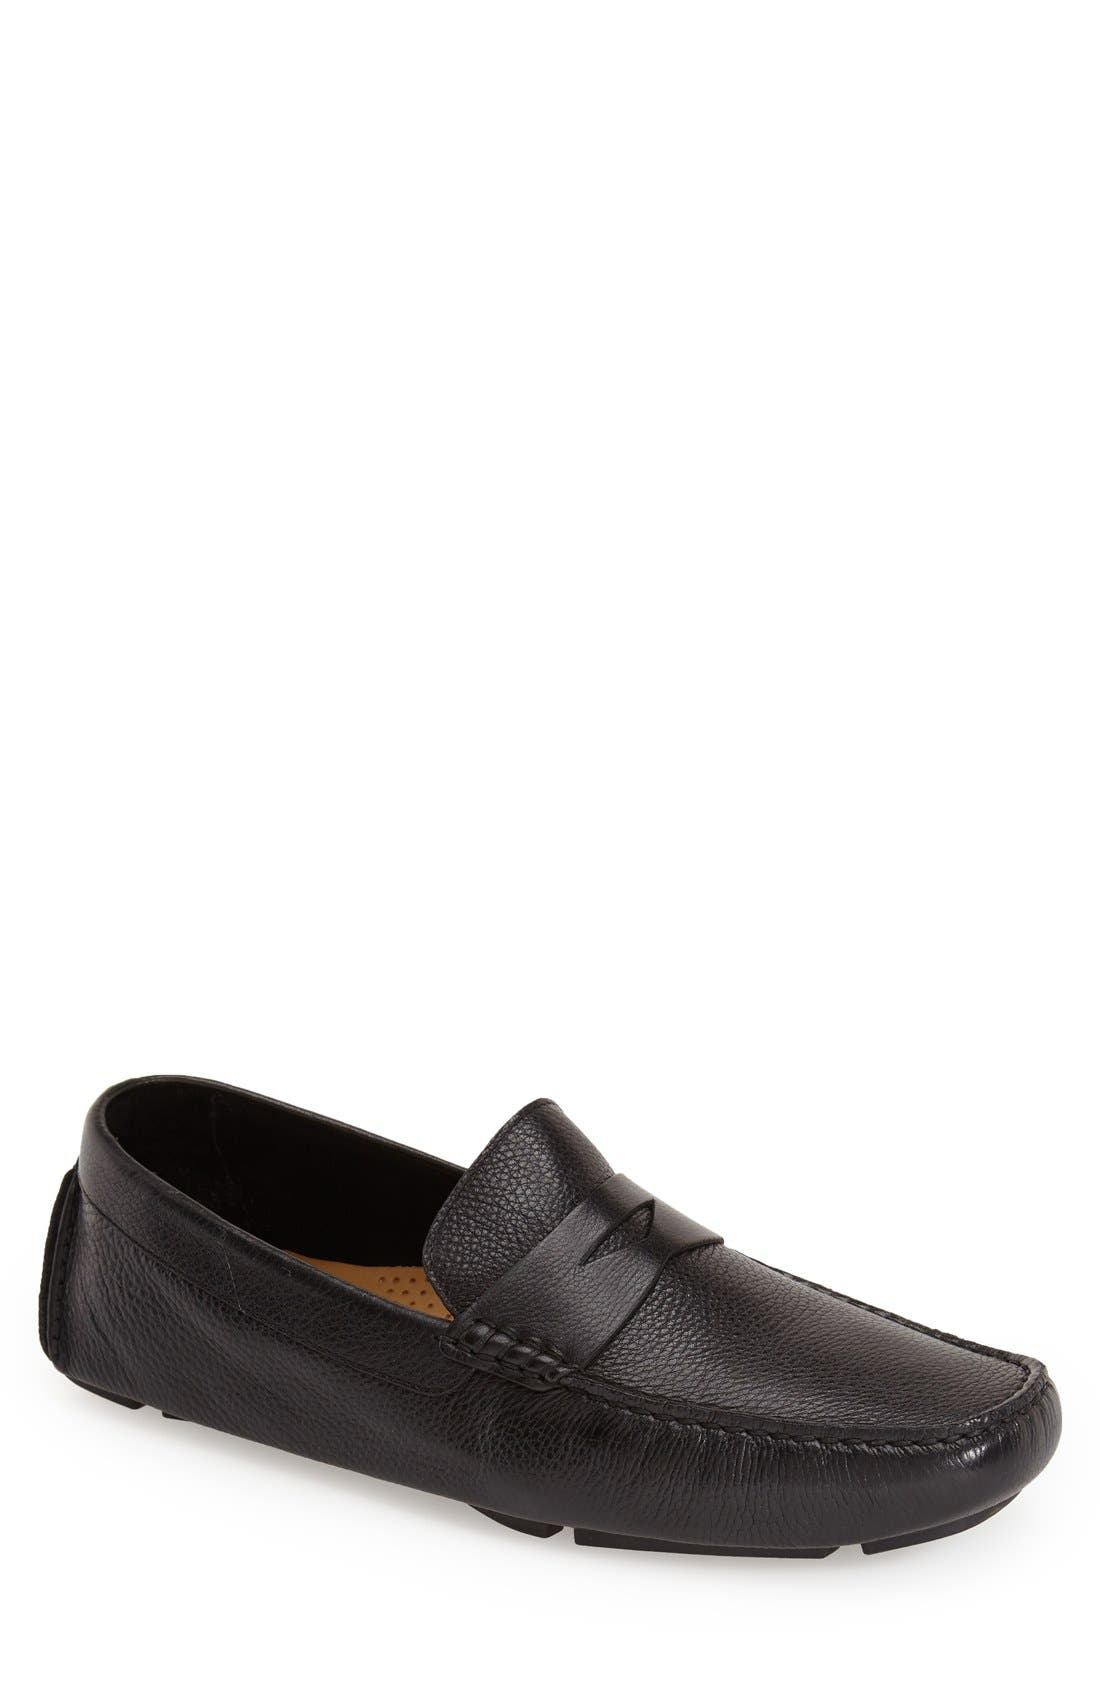 'Howland' Penny Loafer,                             Main thumbnail 1, color,                             BLACK TUMBLED